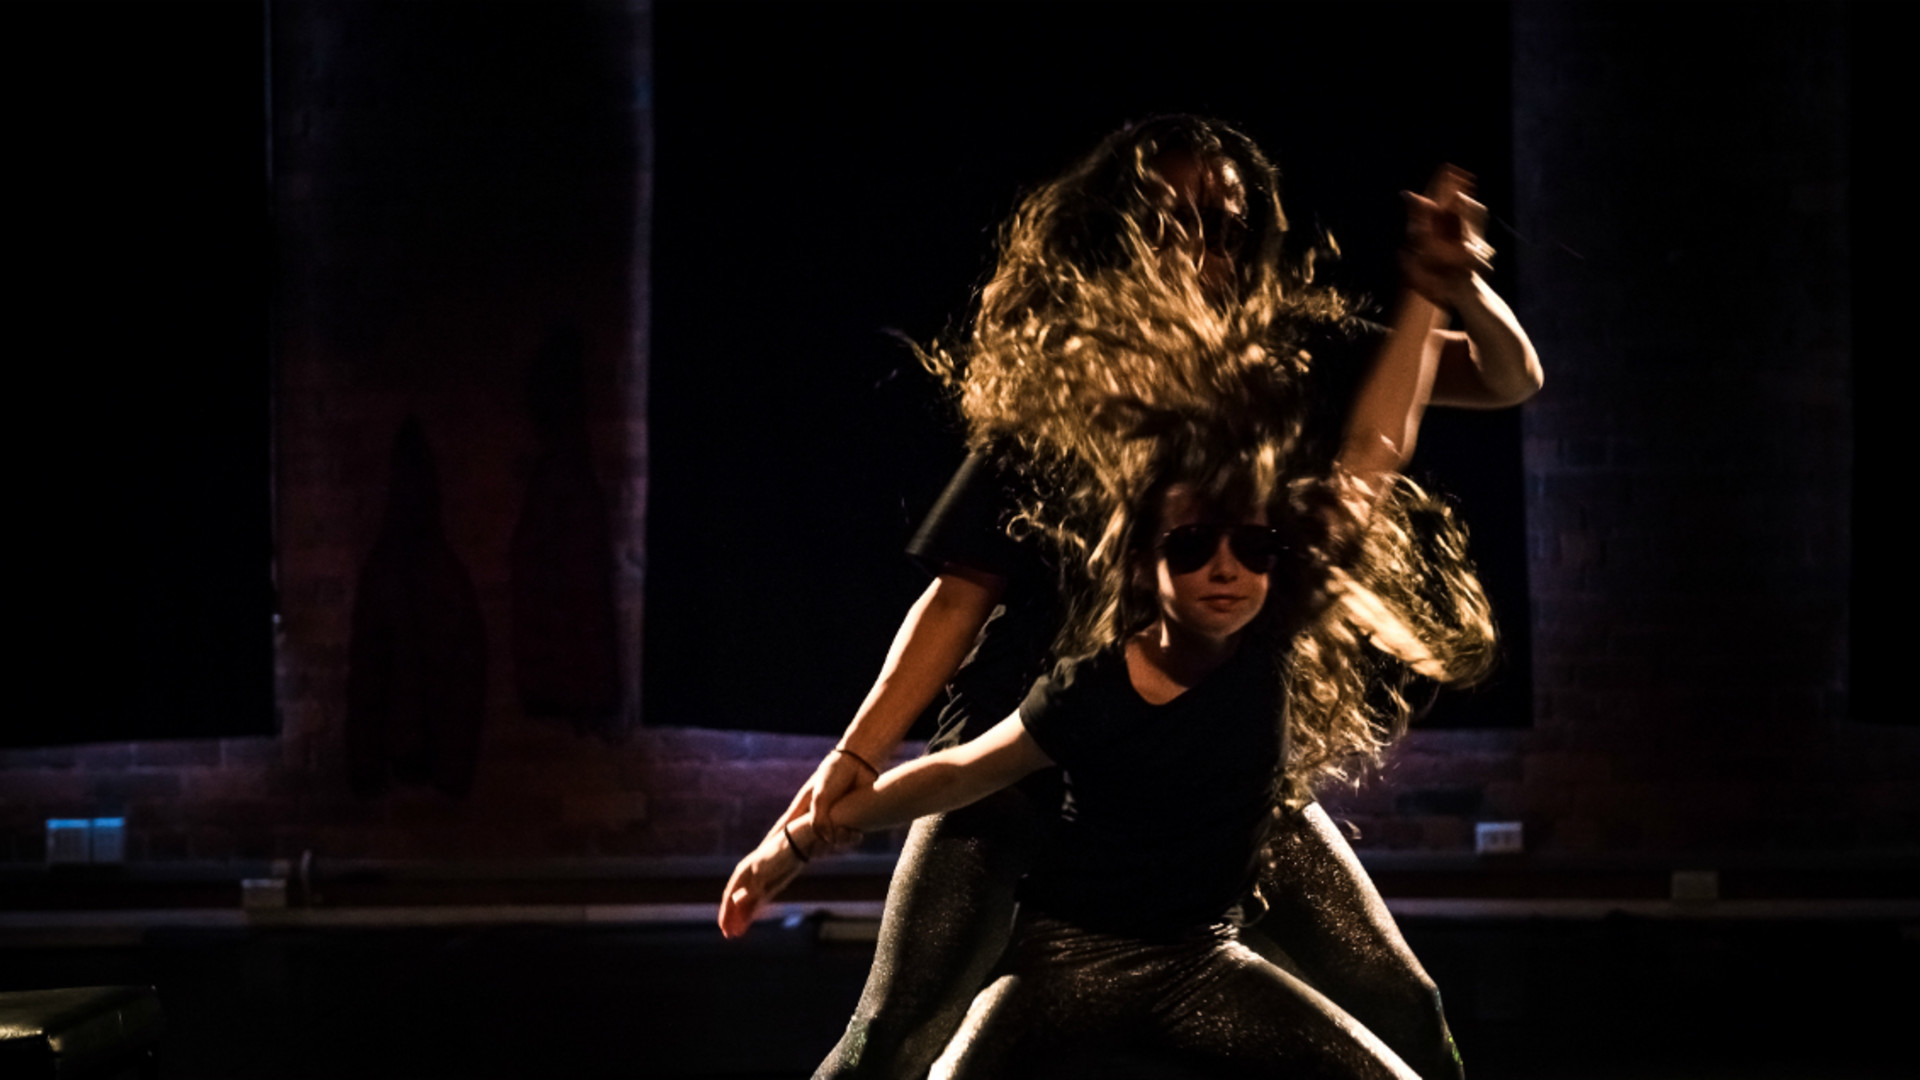 One dancer stands in front of the other, their hands linked and hair flying outward.